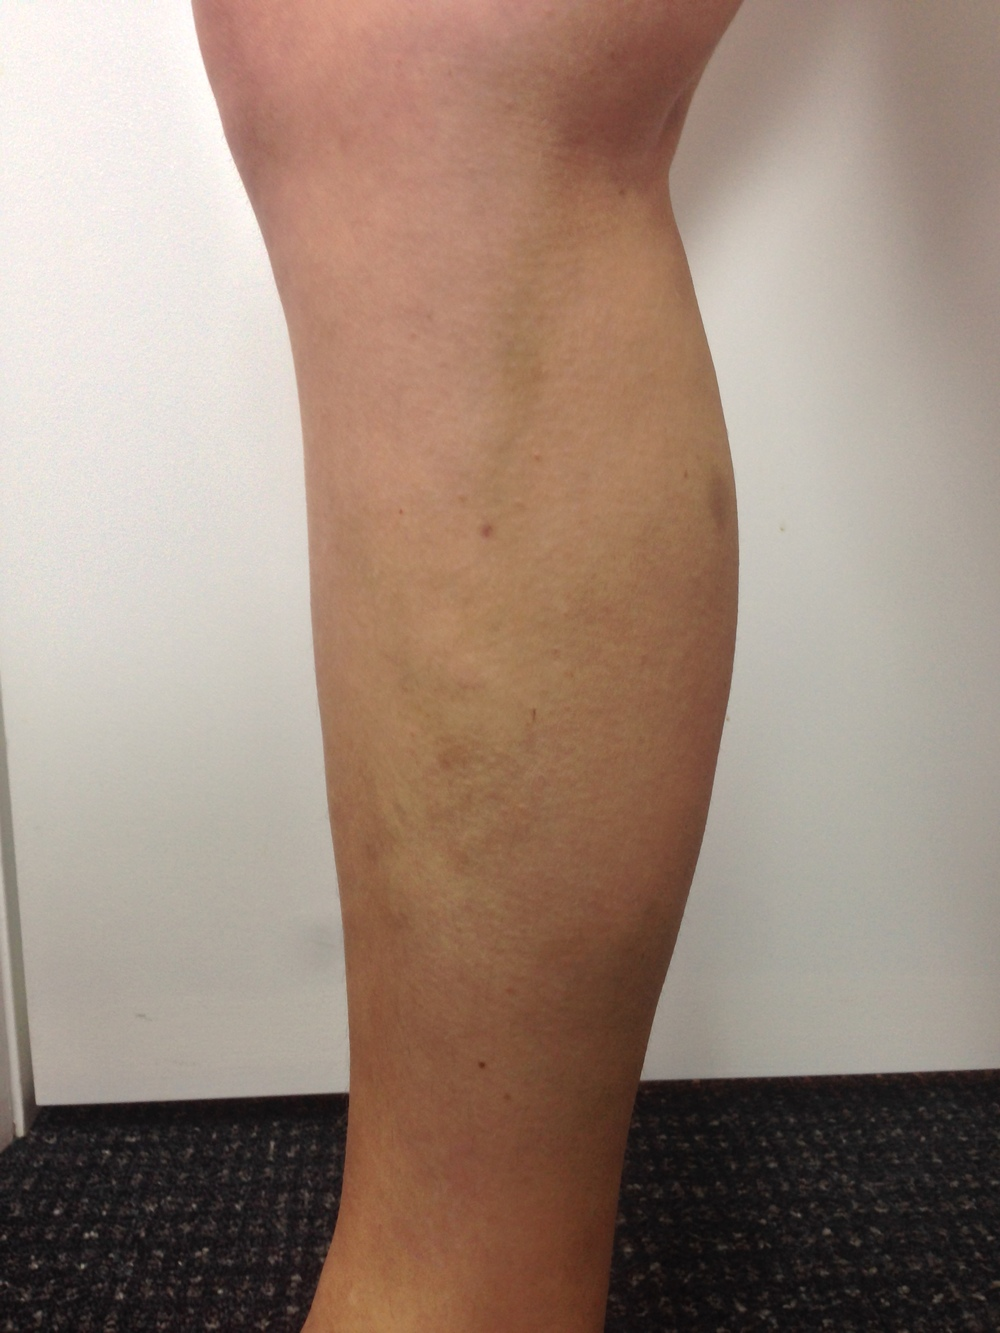 Treatment: EndoVenous Laser Ablation and Ultrasound Guided Sclerotherapy. Results at 6 months.